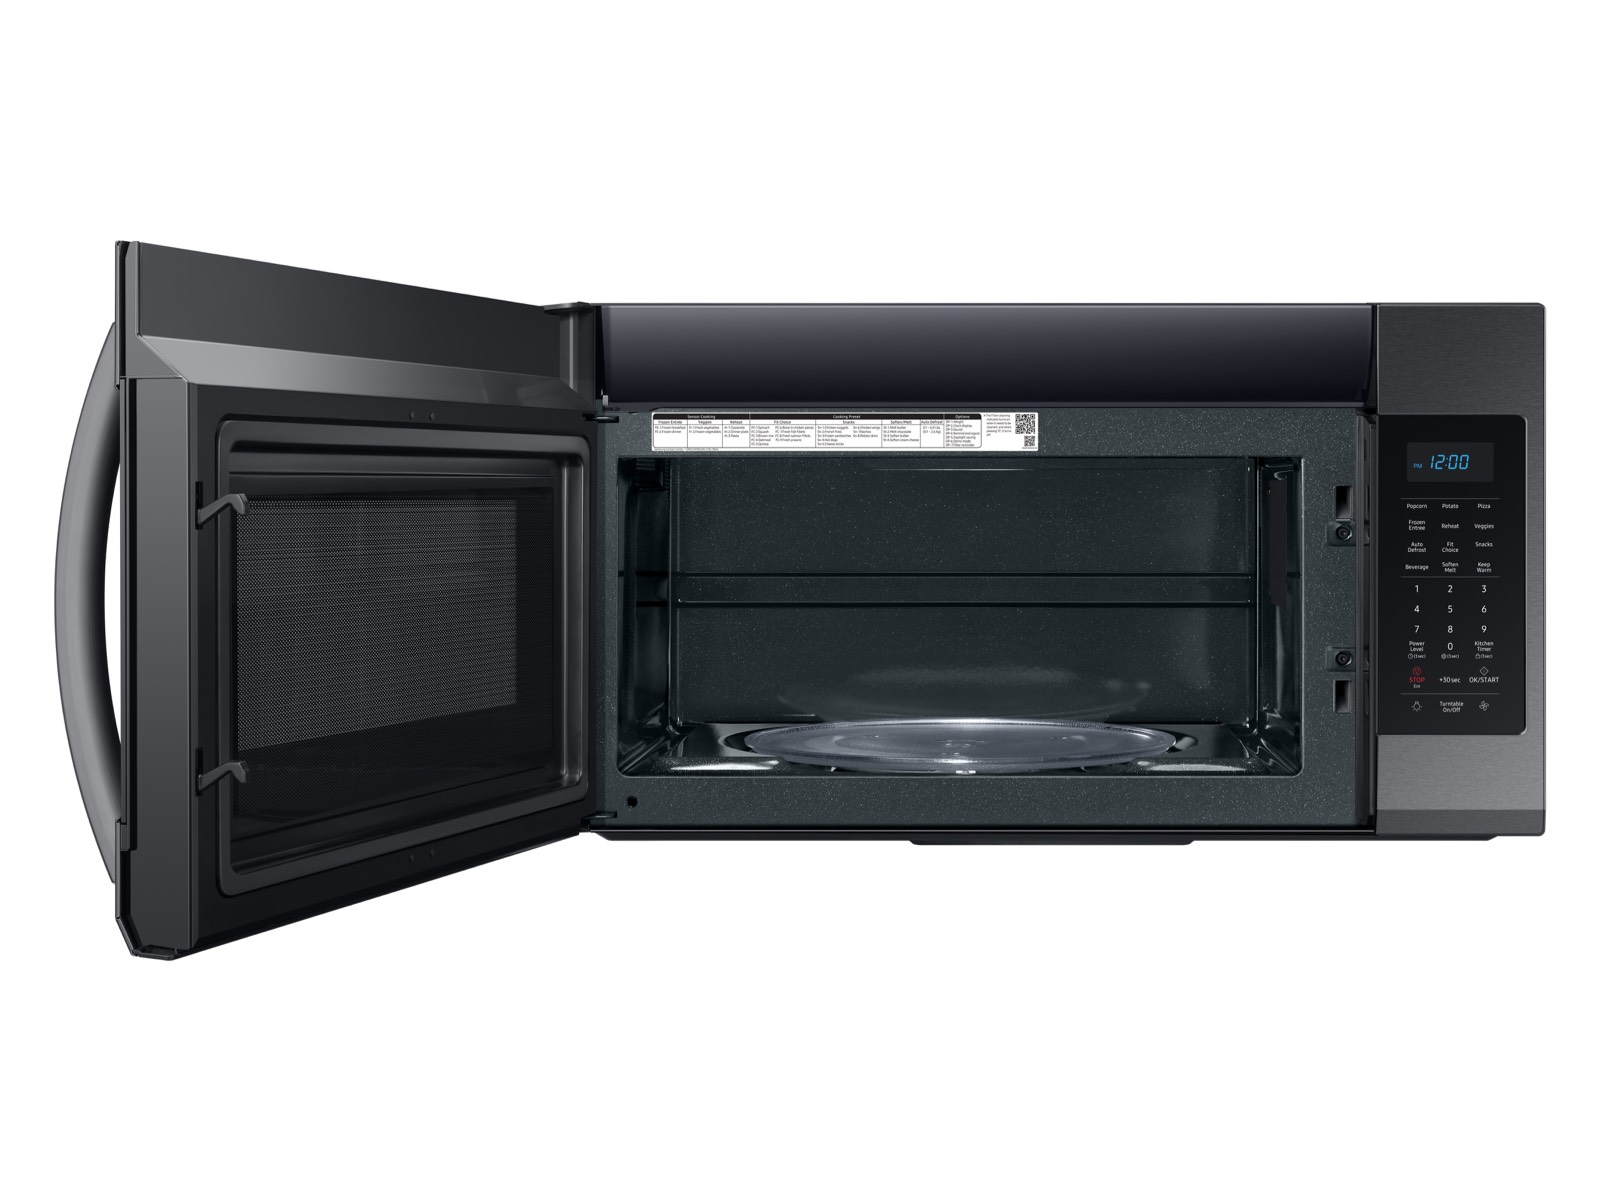 Thumbnail image of 1.9 cu ft Over The Range Microwave with Sensor Cooking in Black Stainless Steel